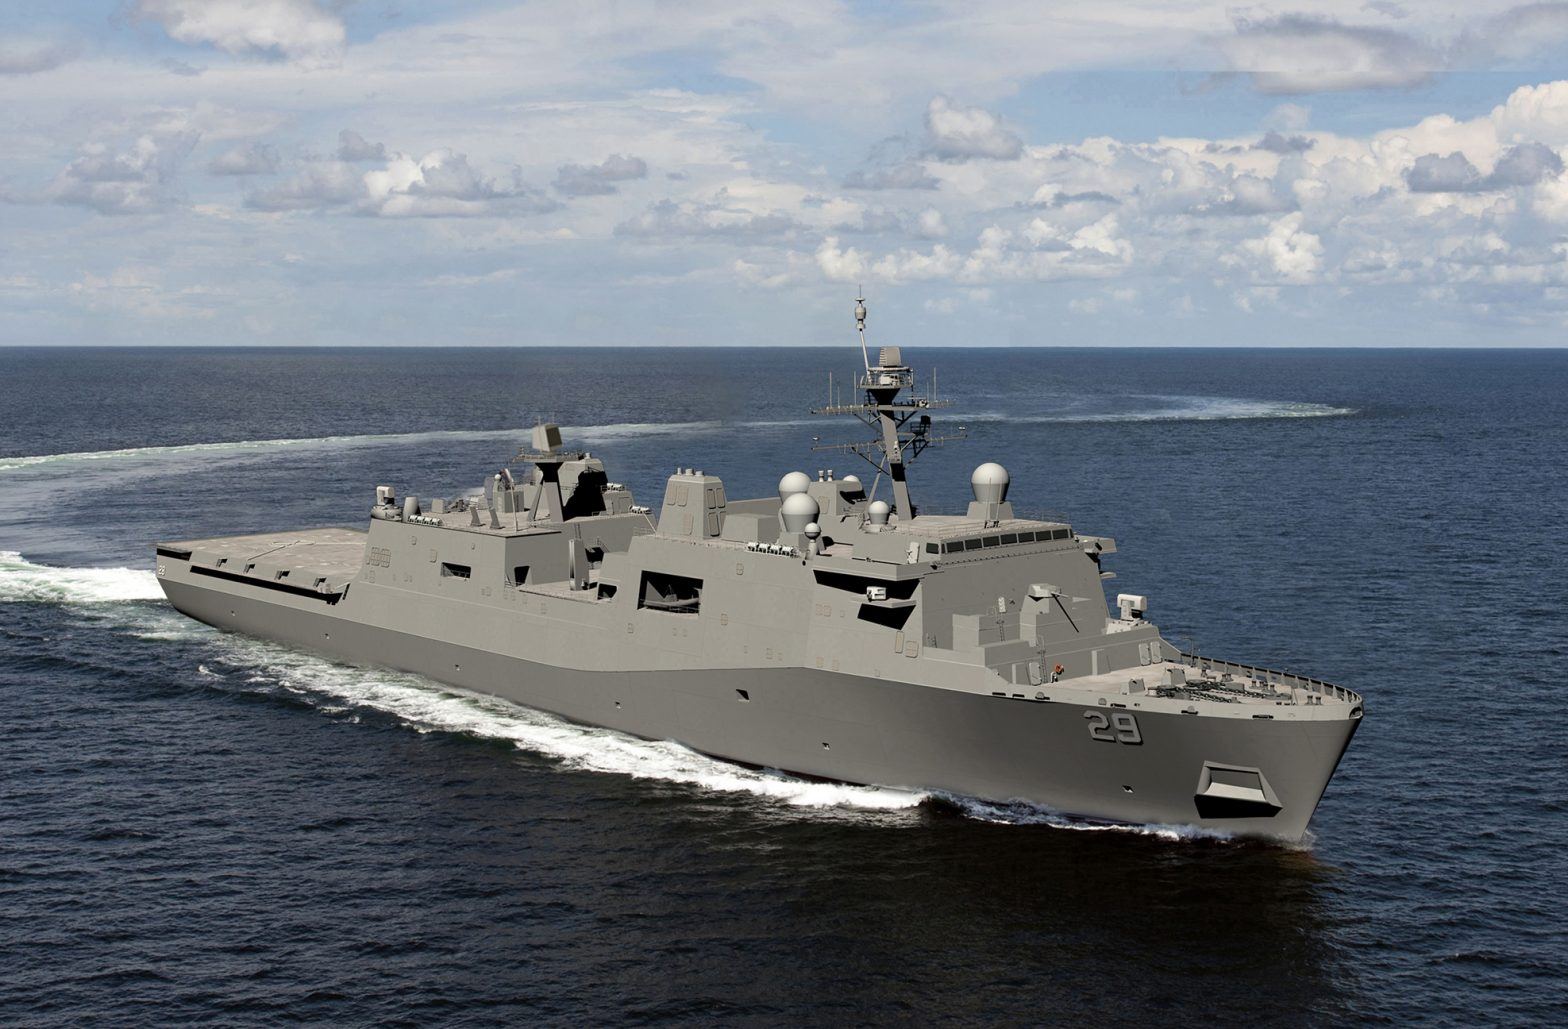 Huntington Ingalls Industries awarded $1.4B for US Navy LPD 29 (San Antonio-Class)